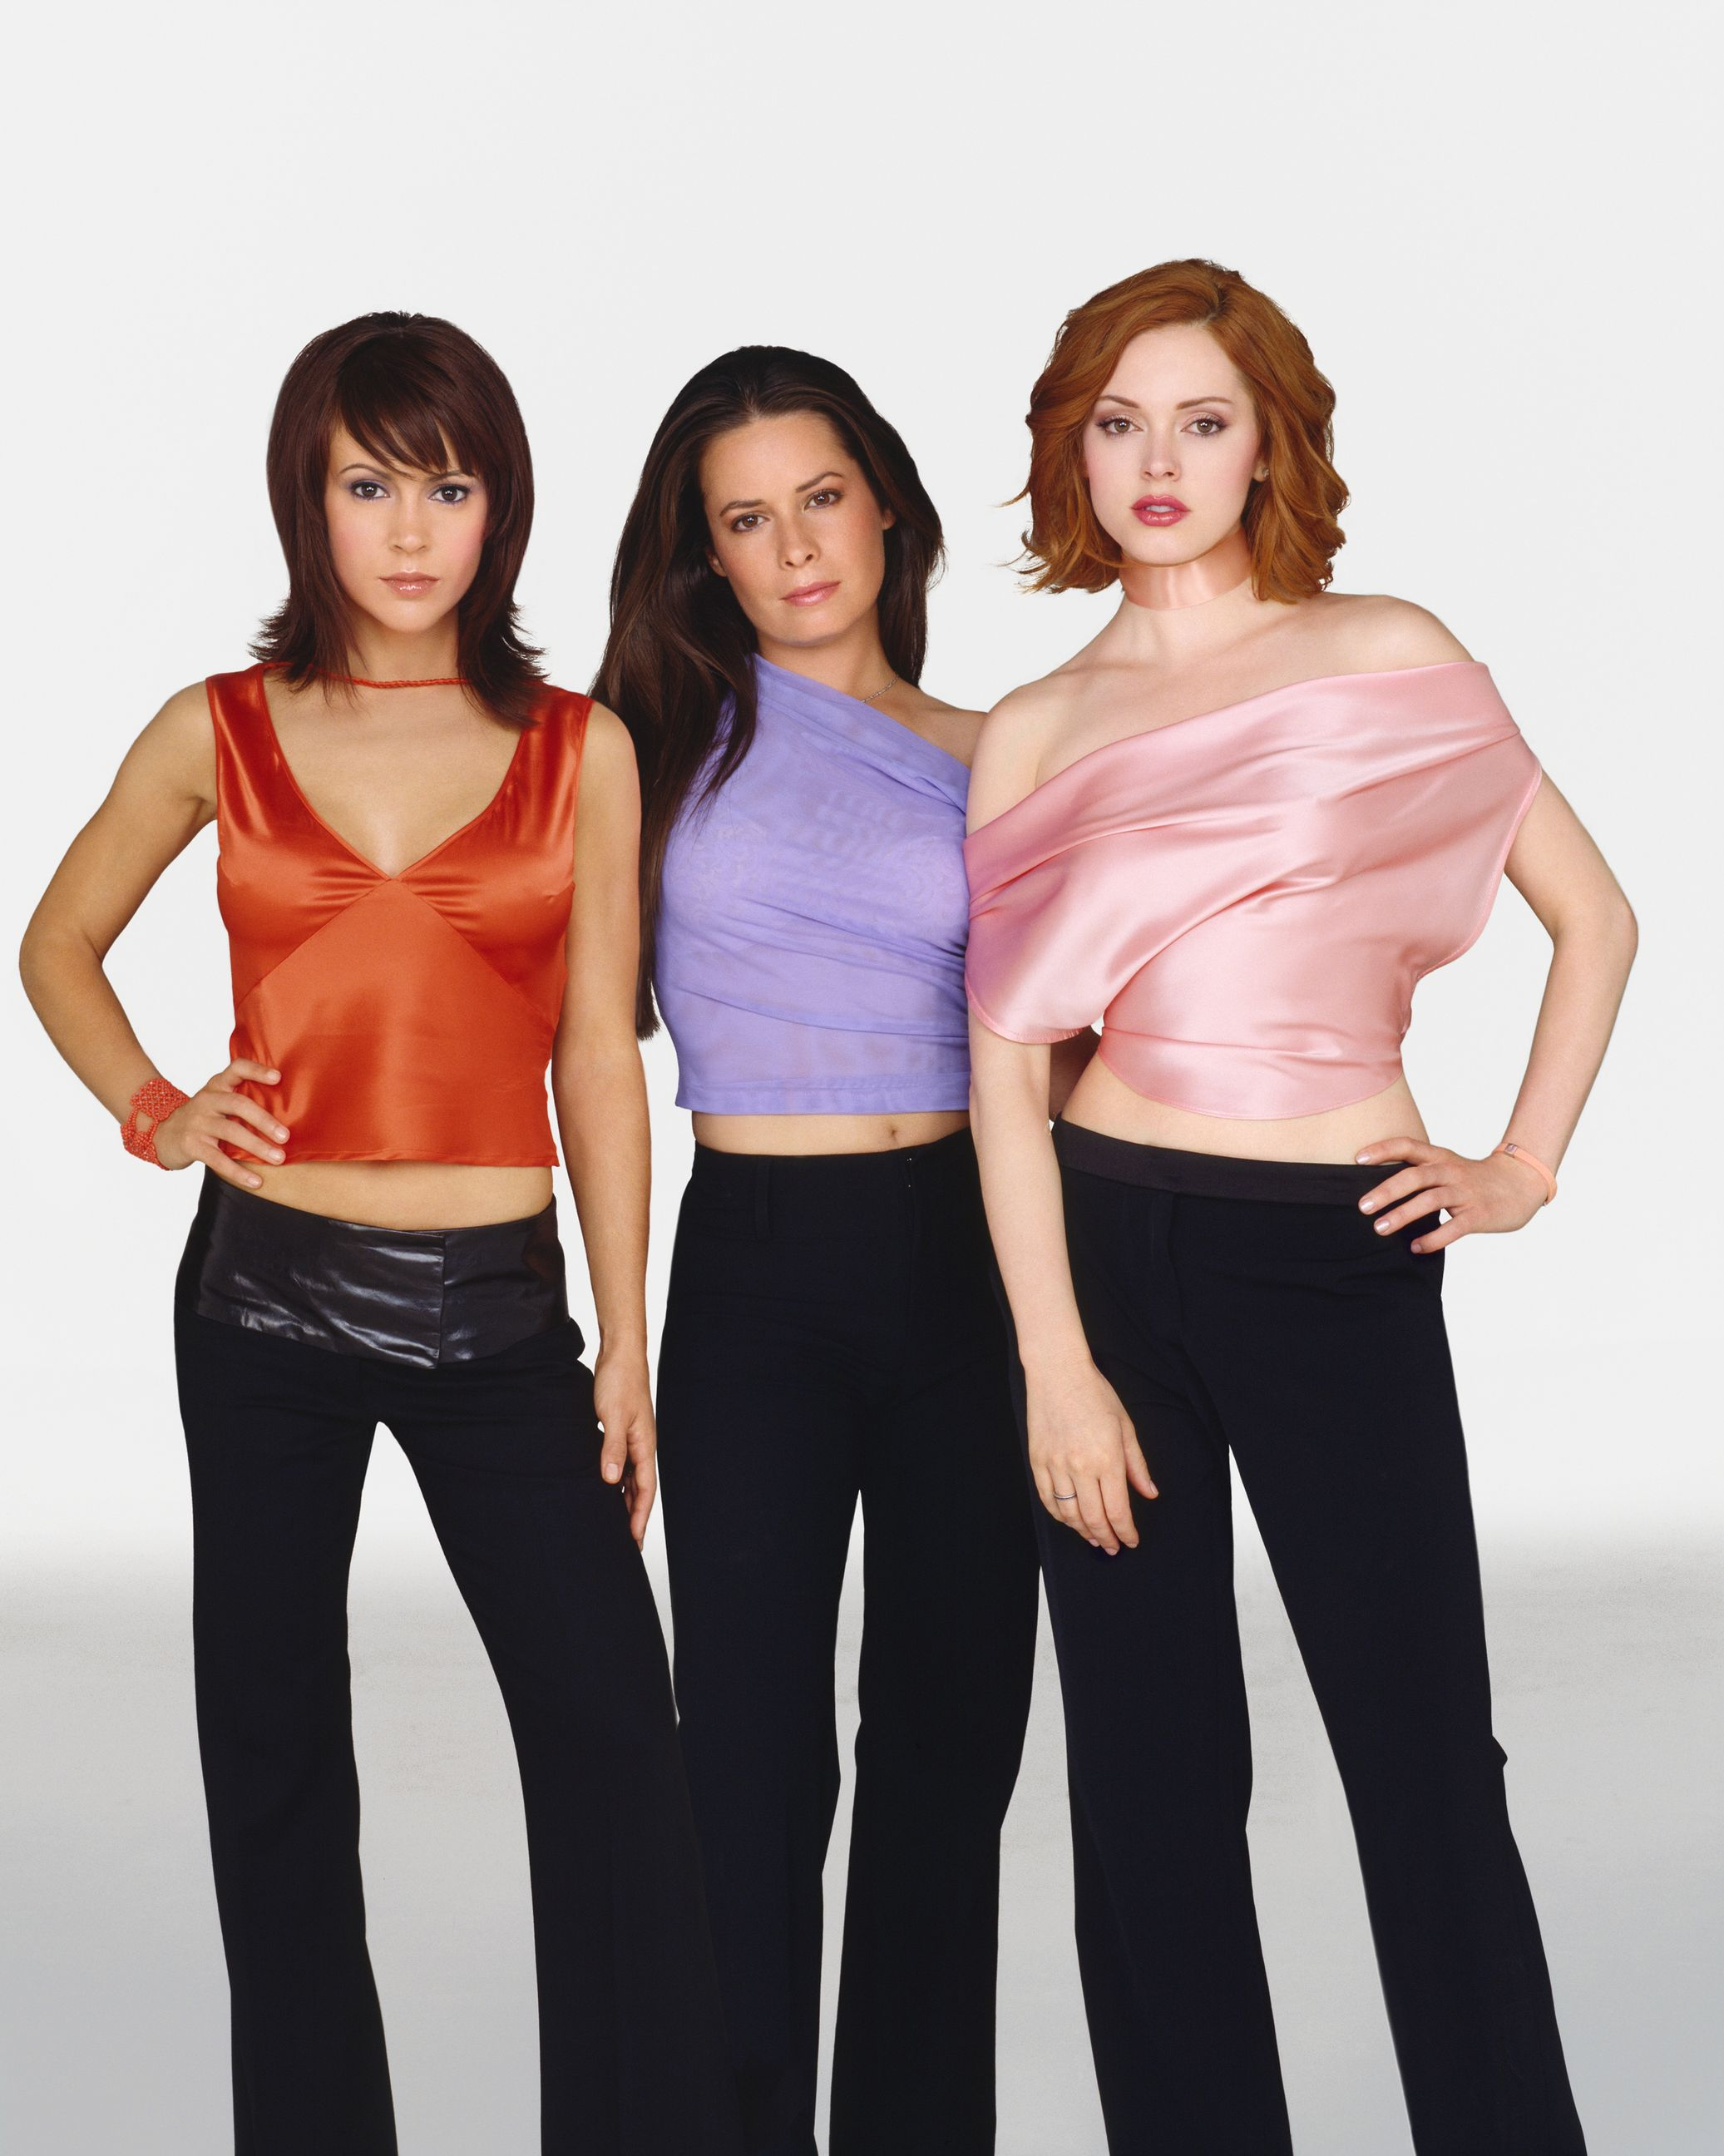 Charmed halliwell sisters 2nd s5 dvdbash06 dvdbash published 10 february 2012 at 2073 2592 in charmed altavistaventures Gallery